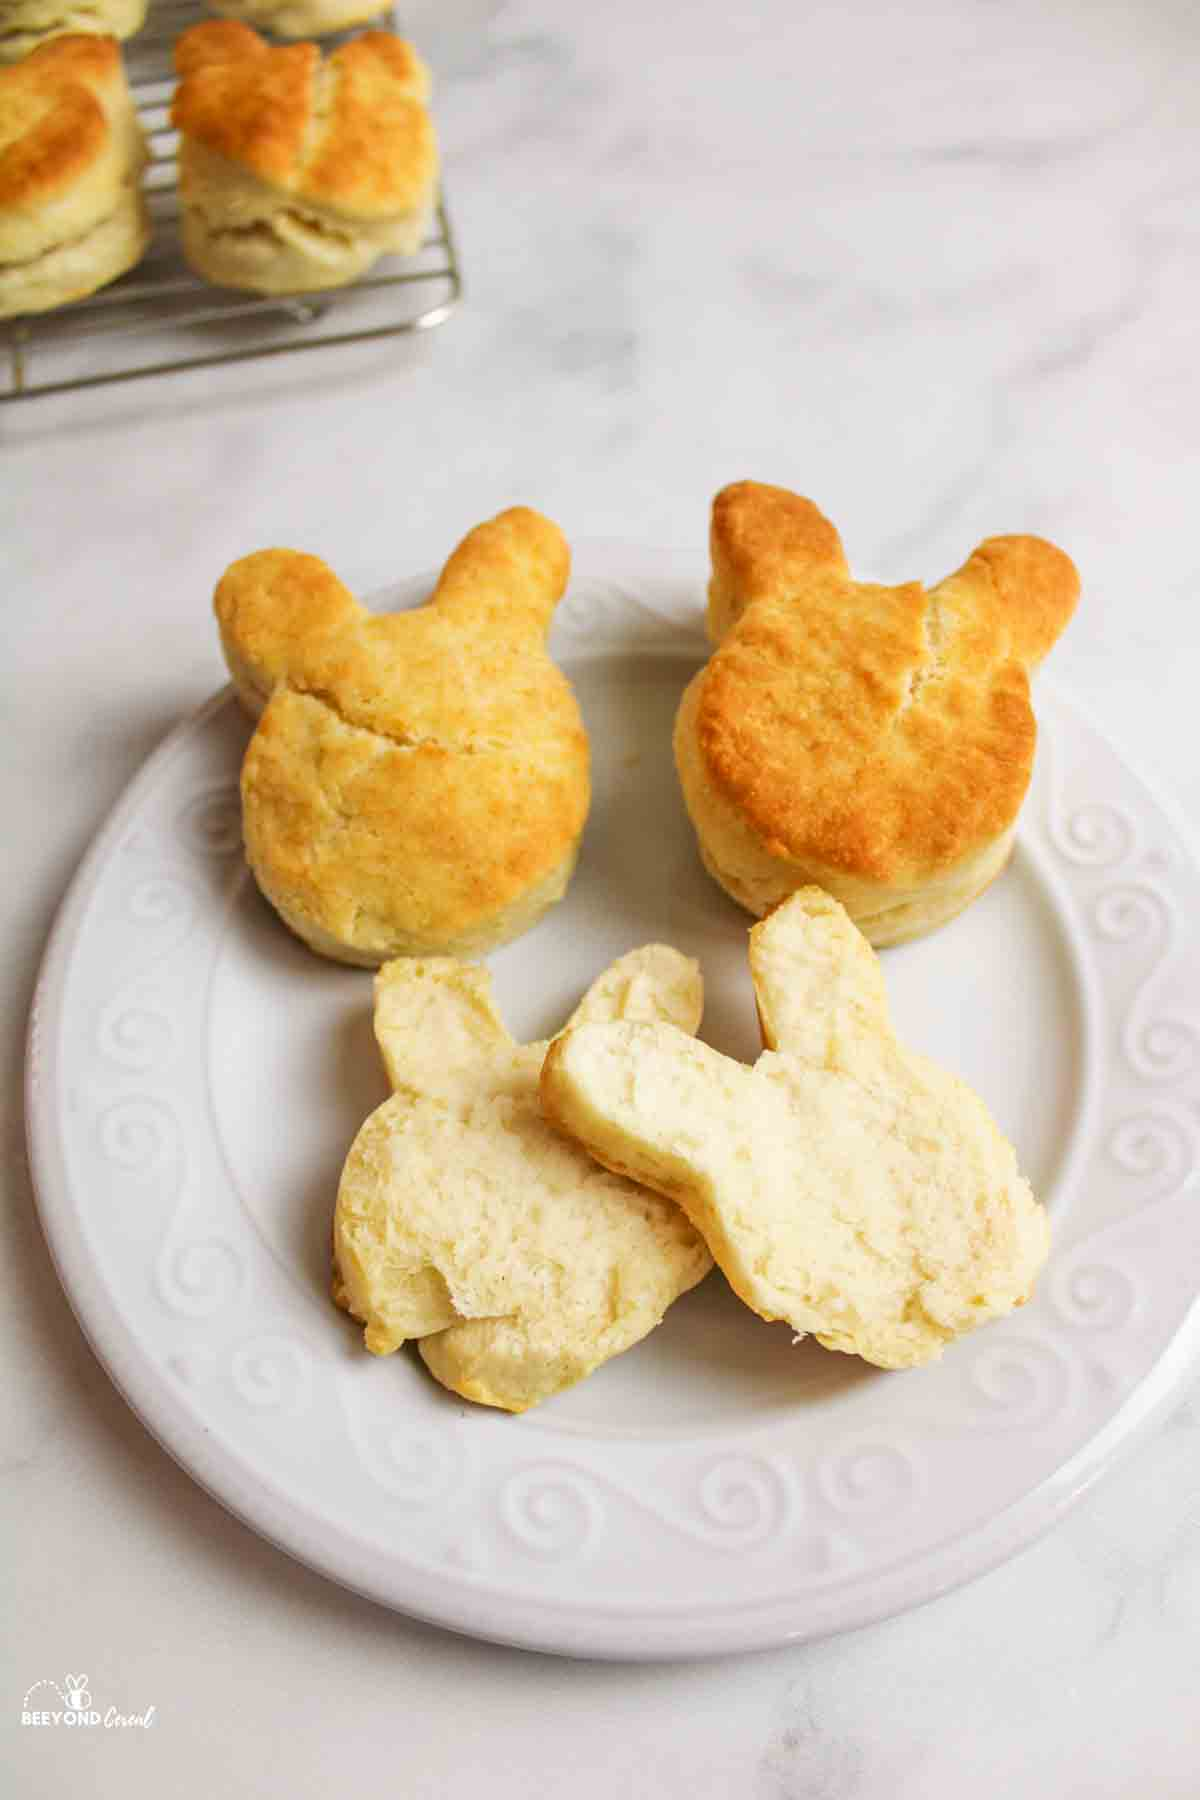 bunny biscuits on a white plate one split open to reveal soft inside